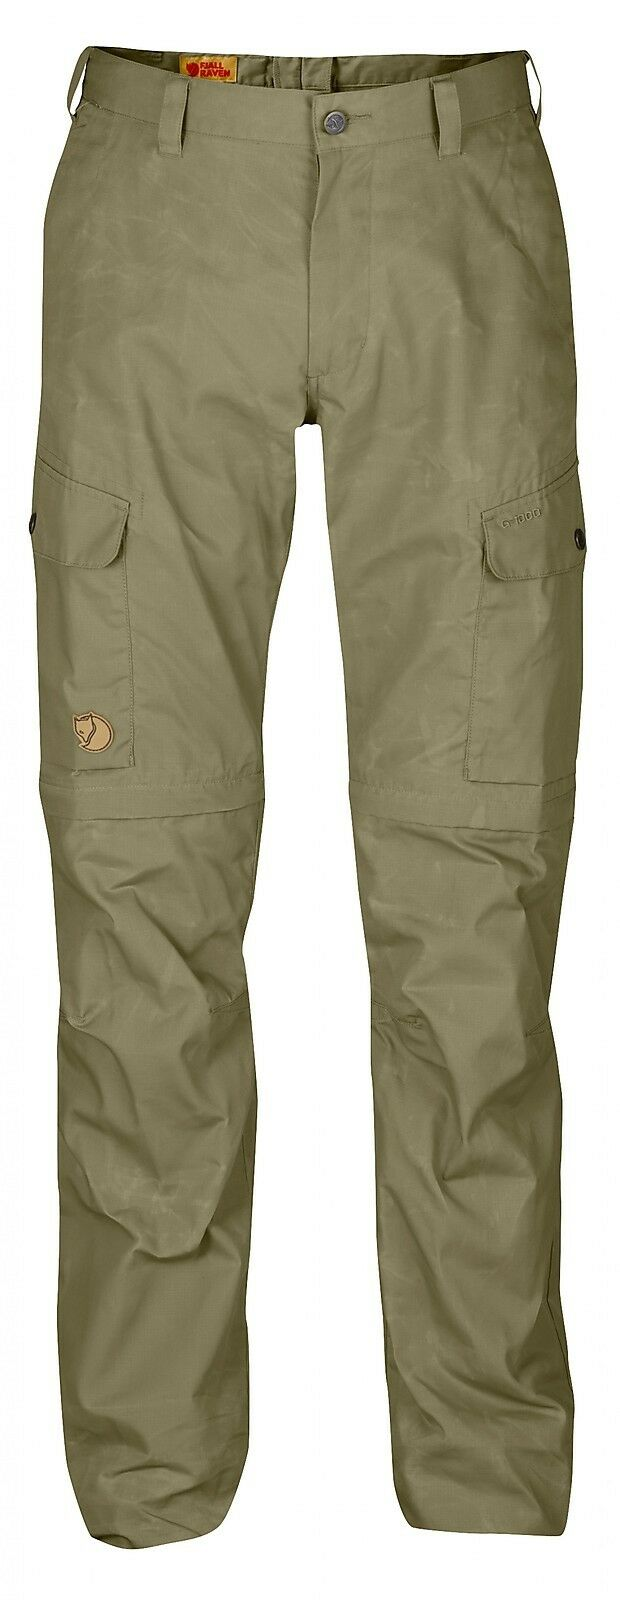 Fjäll räven Ruaha Zip Off Pants Zip-Off Light Khaki Size  44  100% authentic